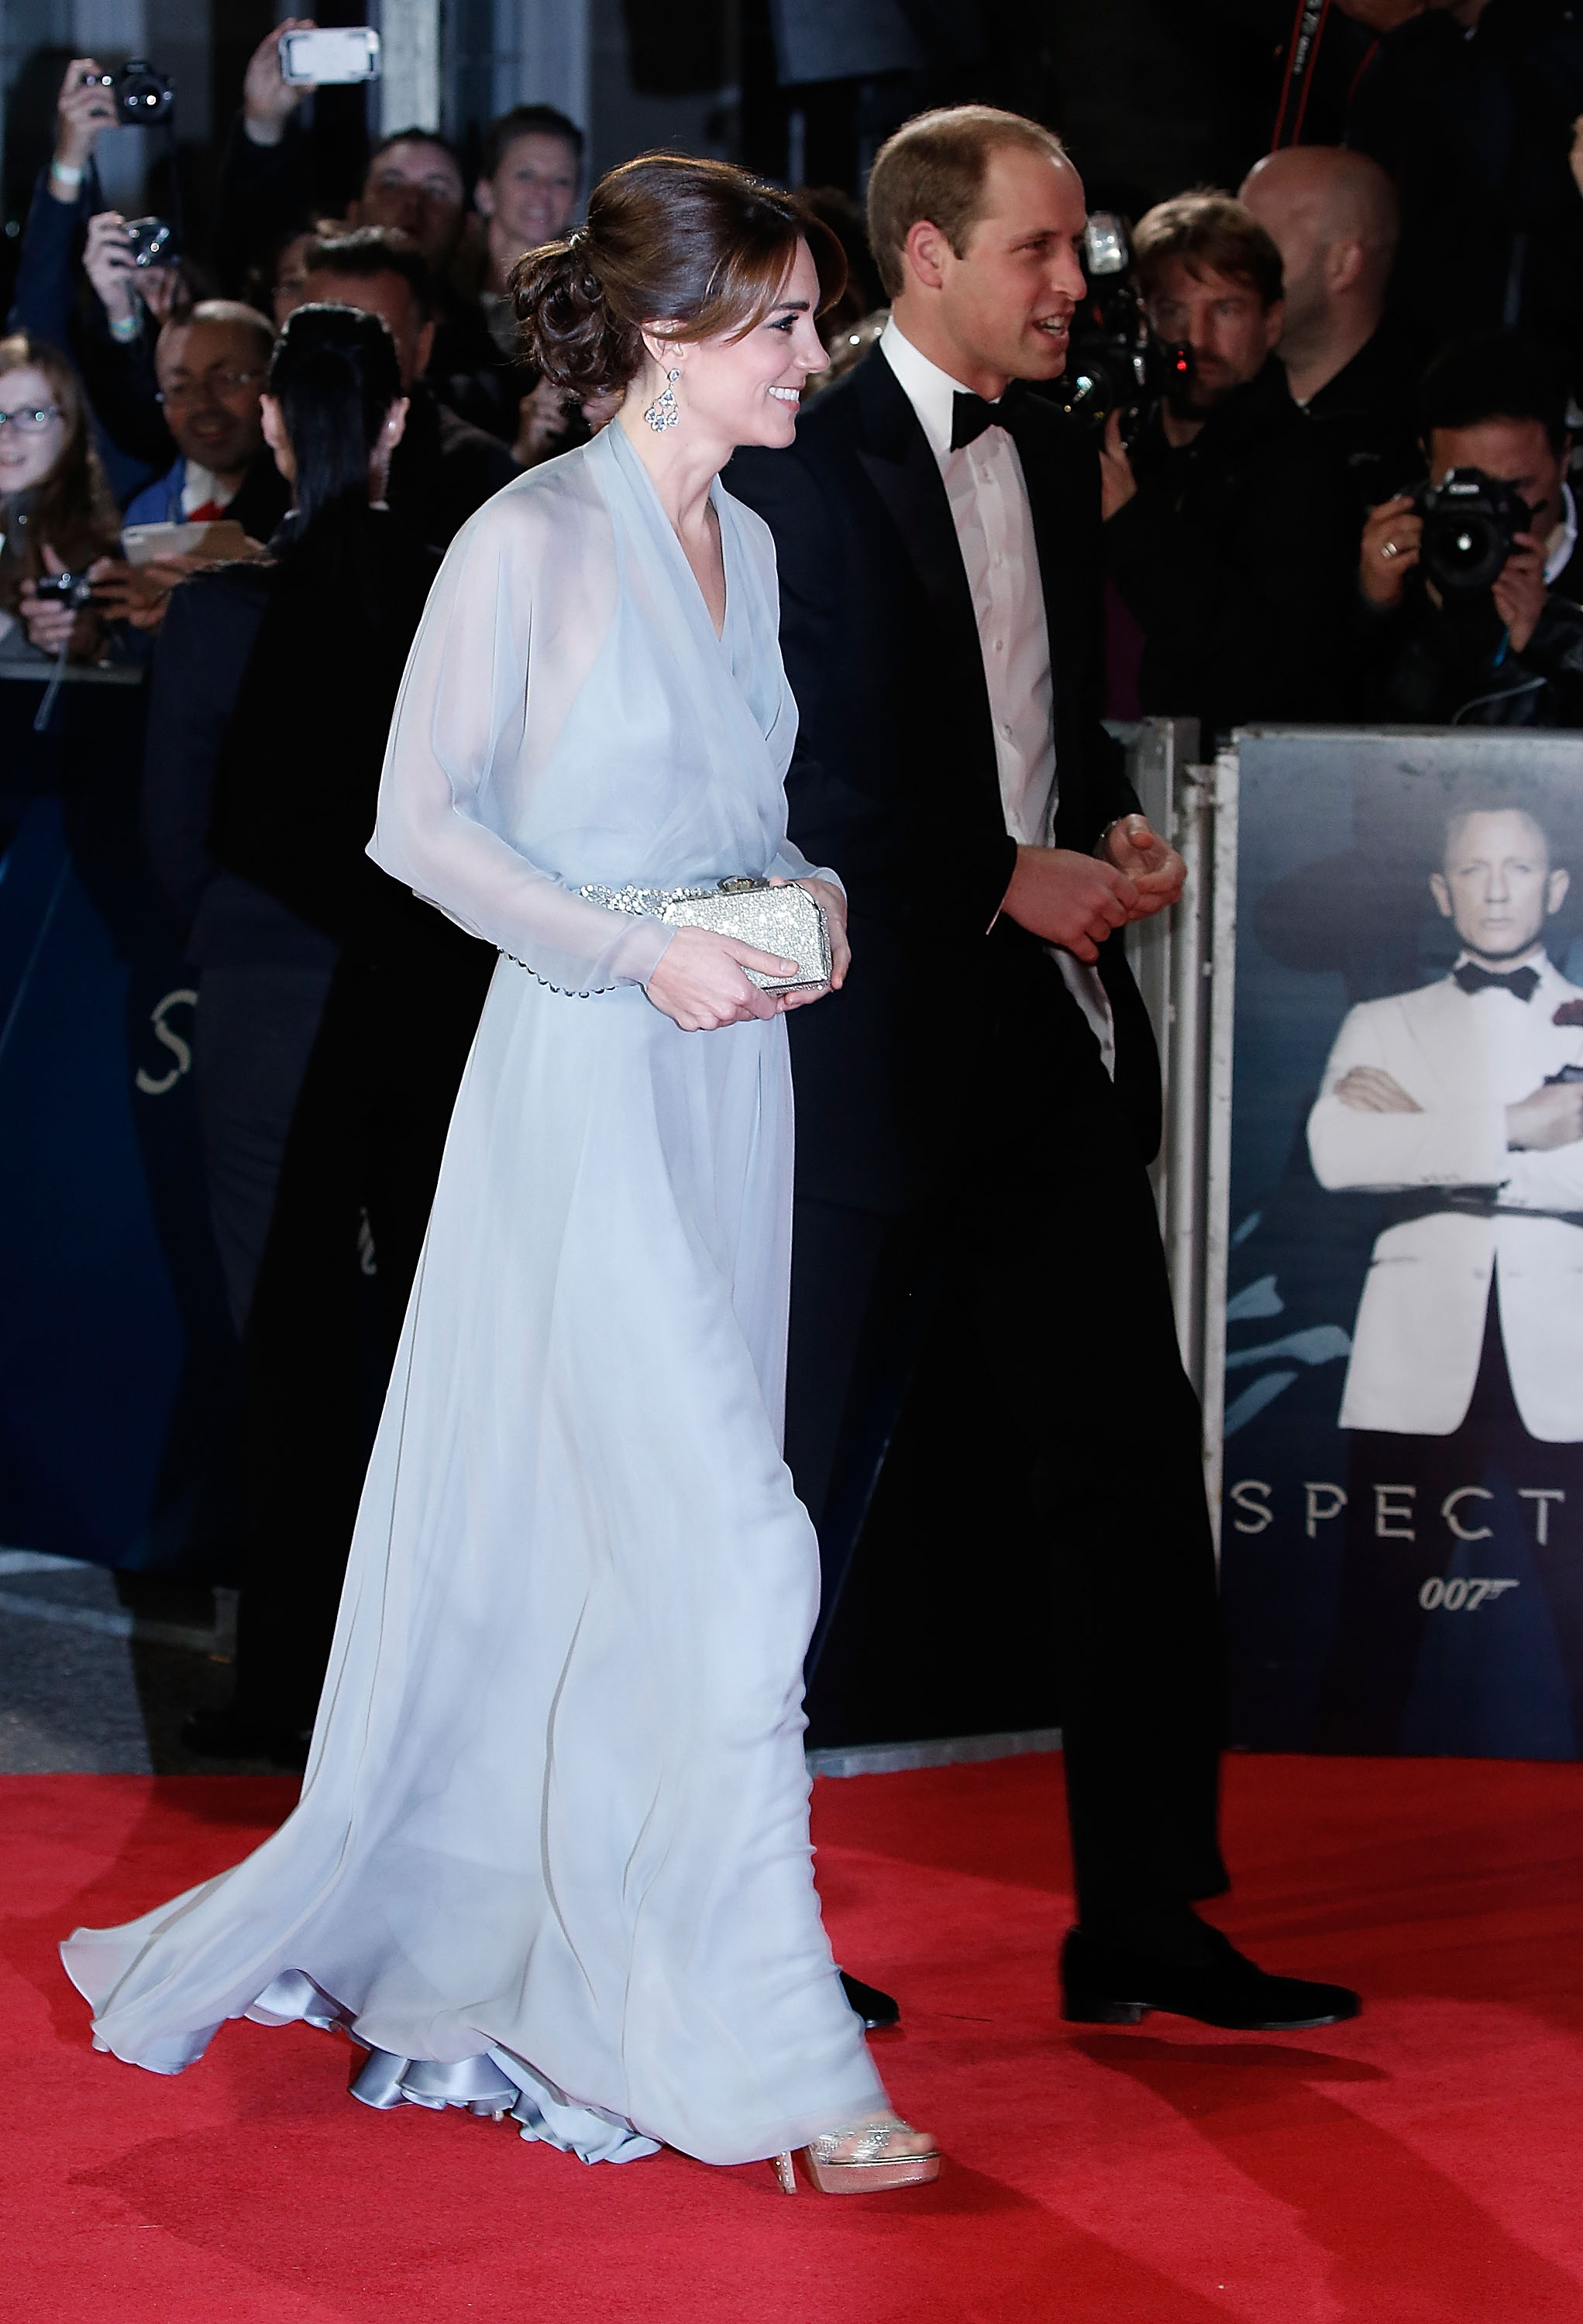 Kate Middleton in a blue Jenny Packham gown at the Spectre premiere